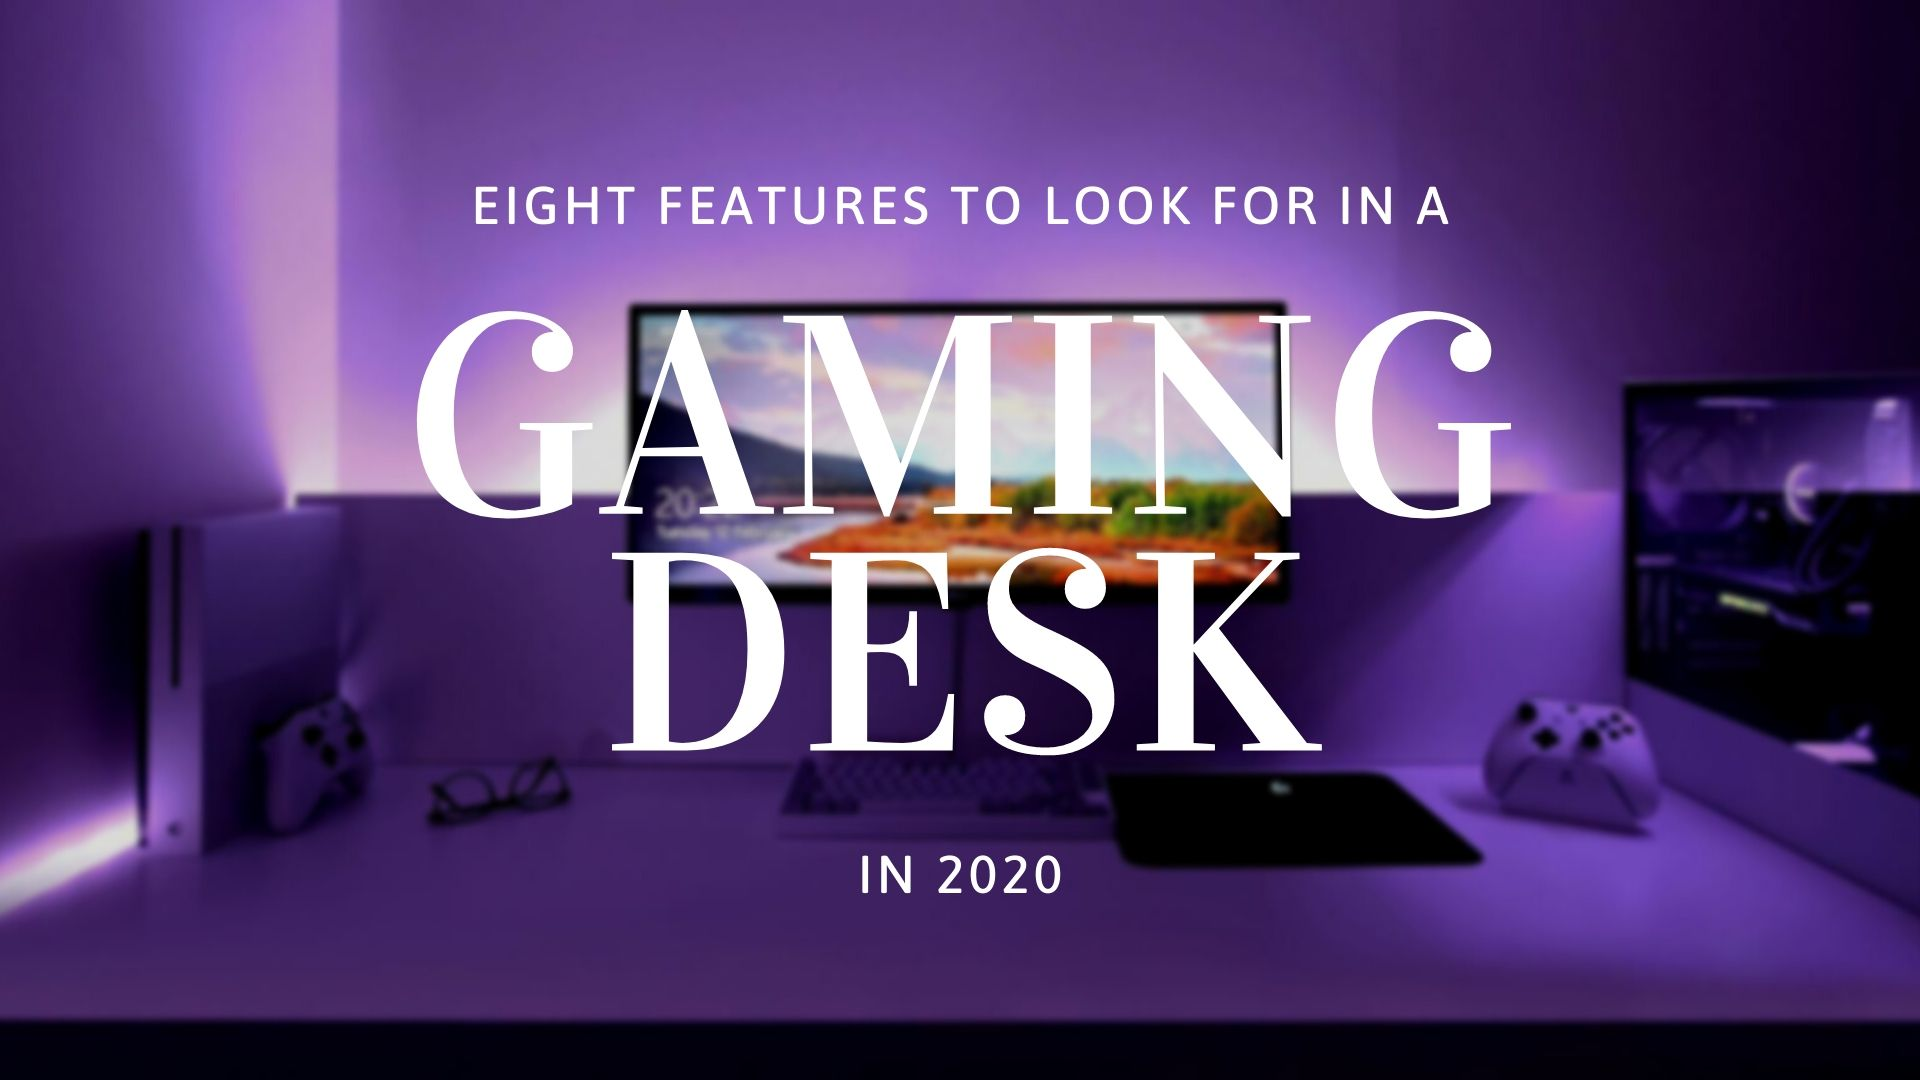 8 Important Features to Consider When Looking For a Gaming Desk in 2020